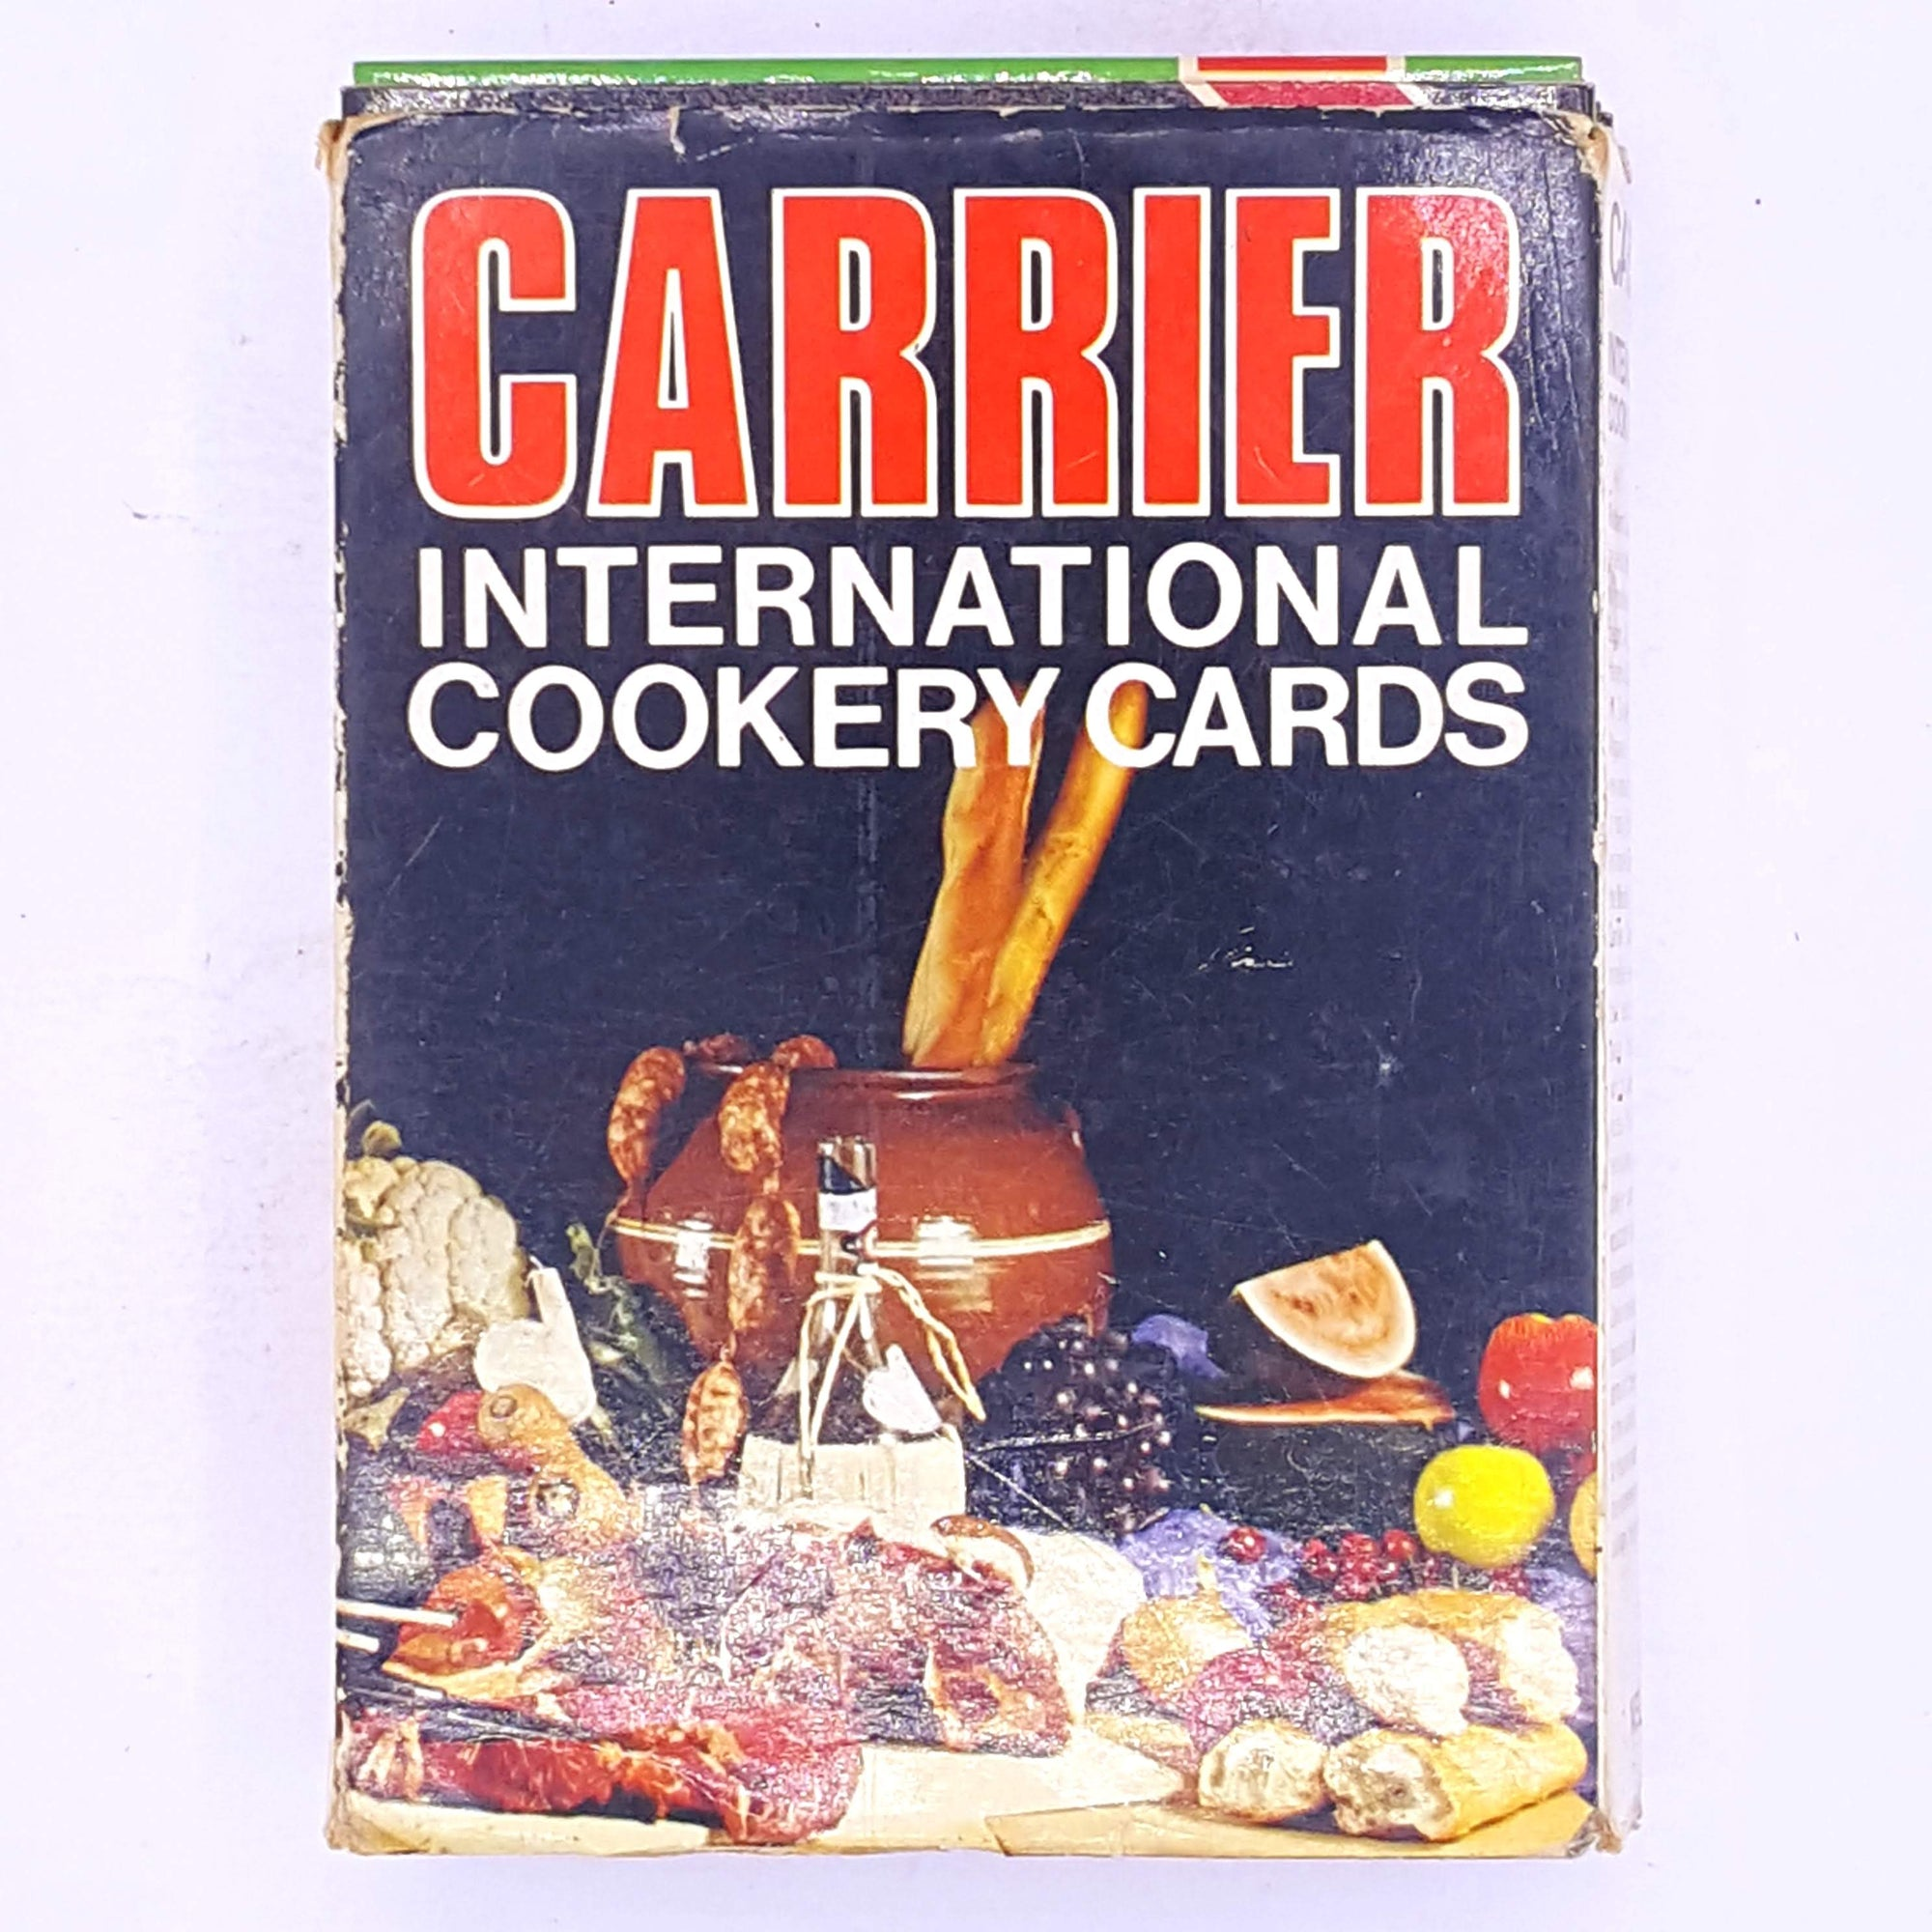 vintage-skills-cooking-cookbooks-books-country-house-library-for-foodies-old-thrift-antique-hobbies-baking- cookbook-recipes-gifts-food-decorative-carrier-international-cookery-cards-patterned-classic-